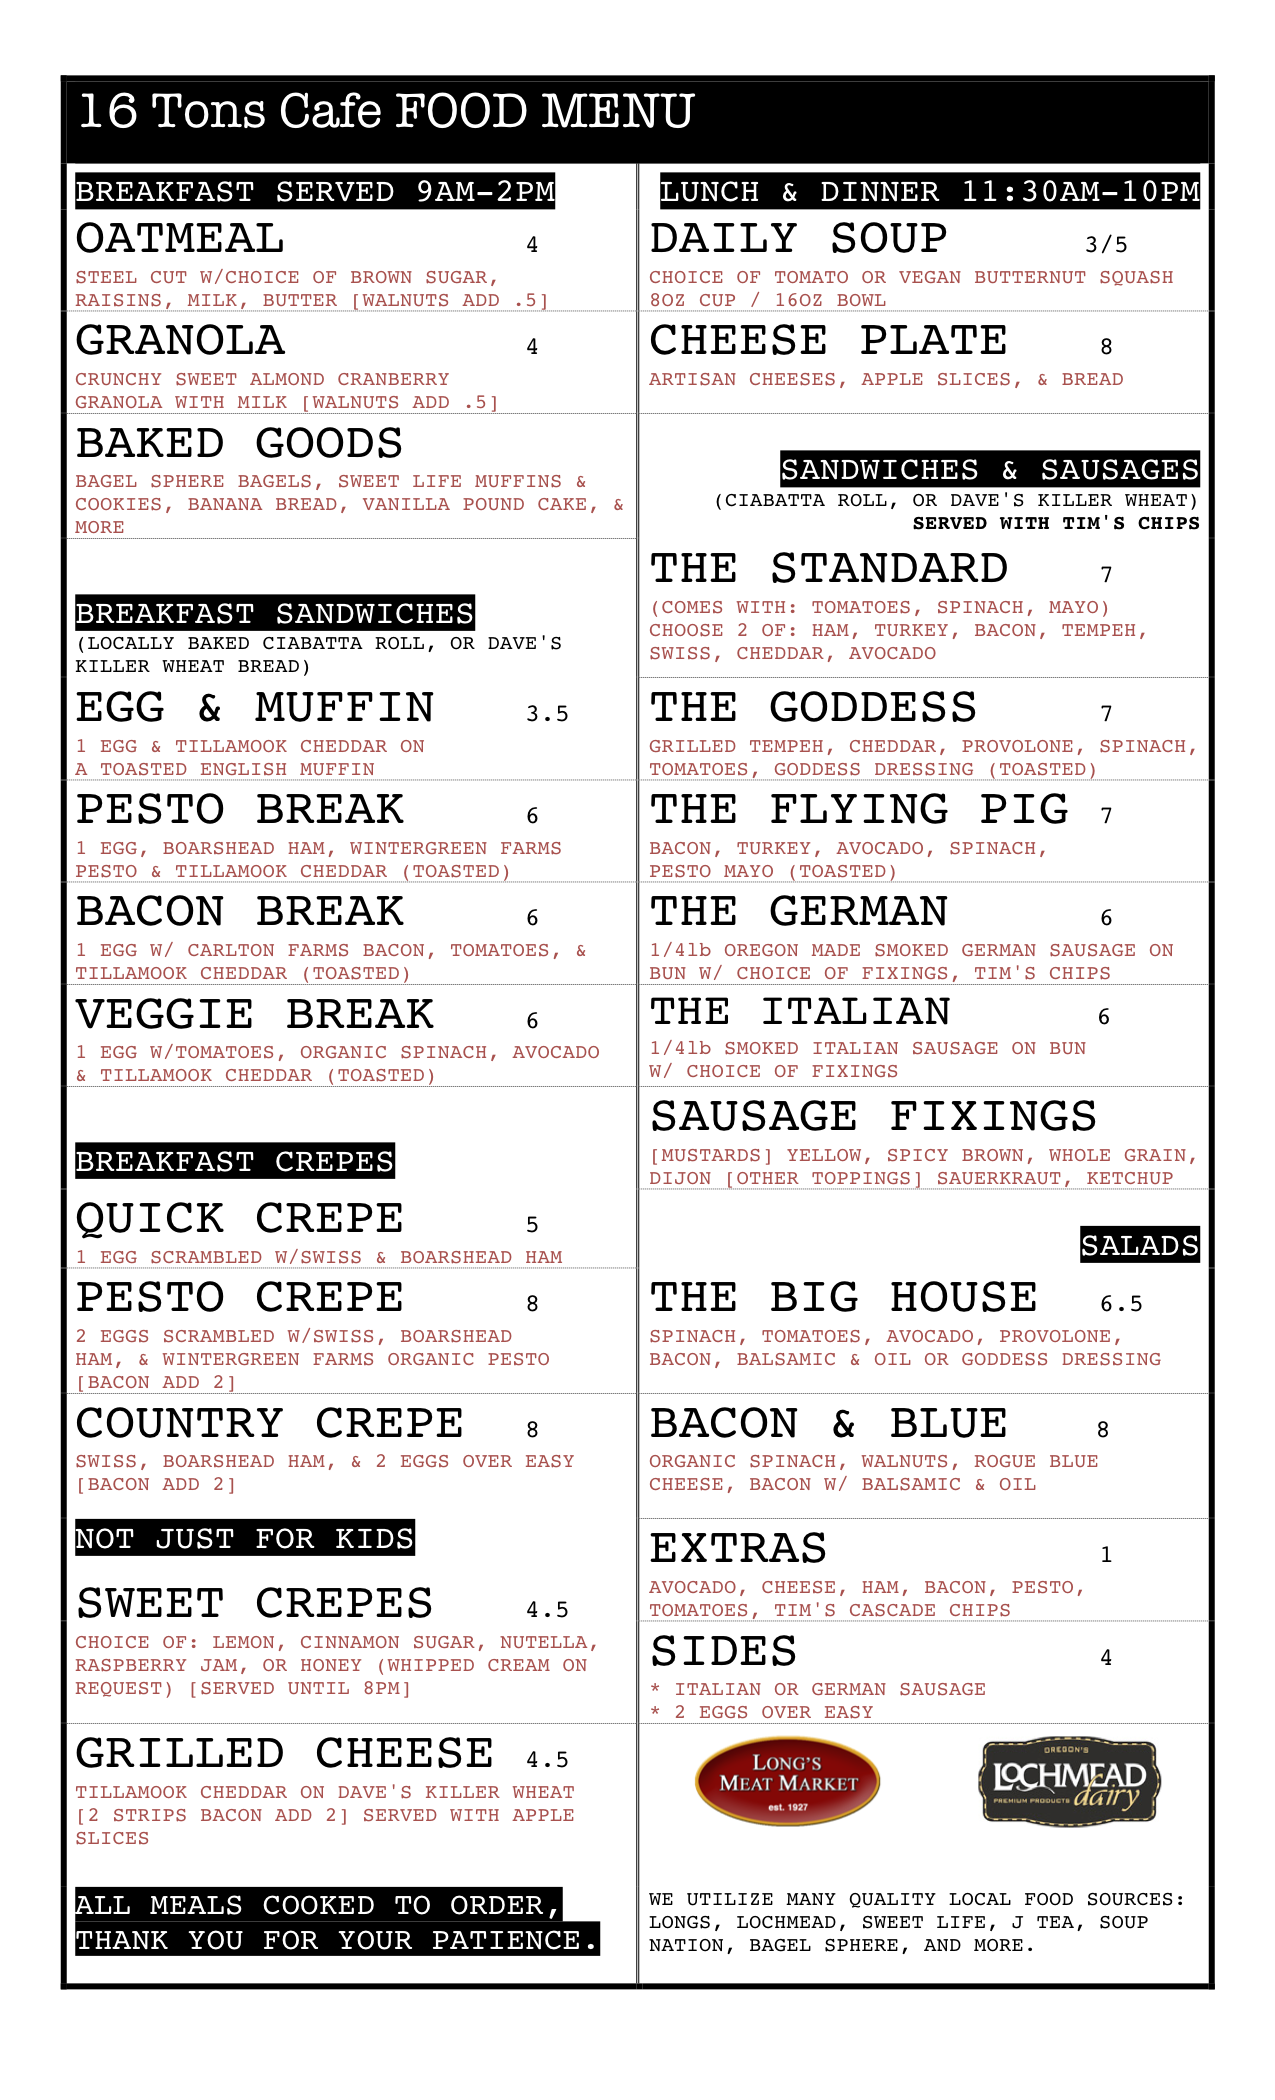 16 Tons Food Menu Dec 2-2013